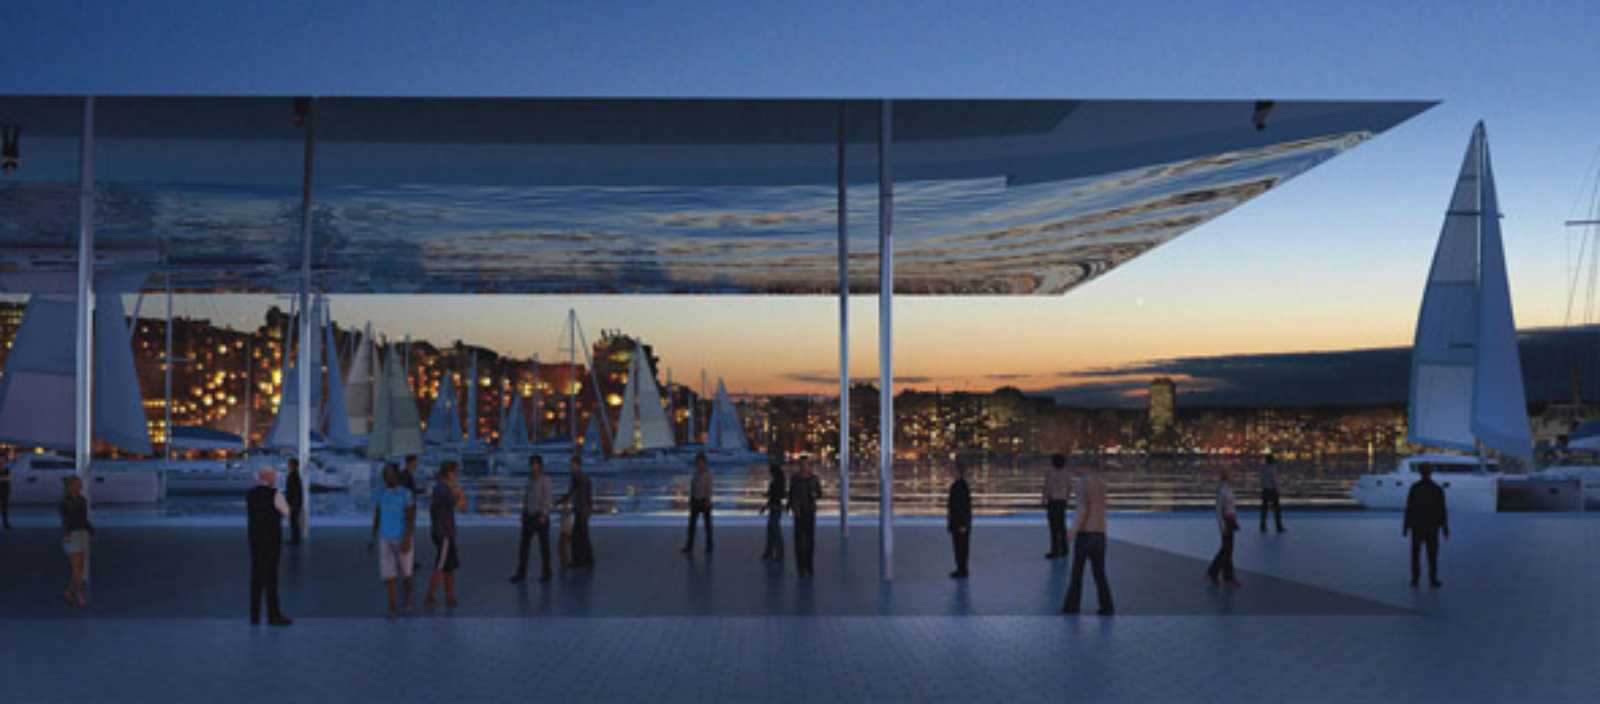 Architecture now and the future marseille vieux port by foster partners - Tangram architectes marseille ...